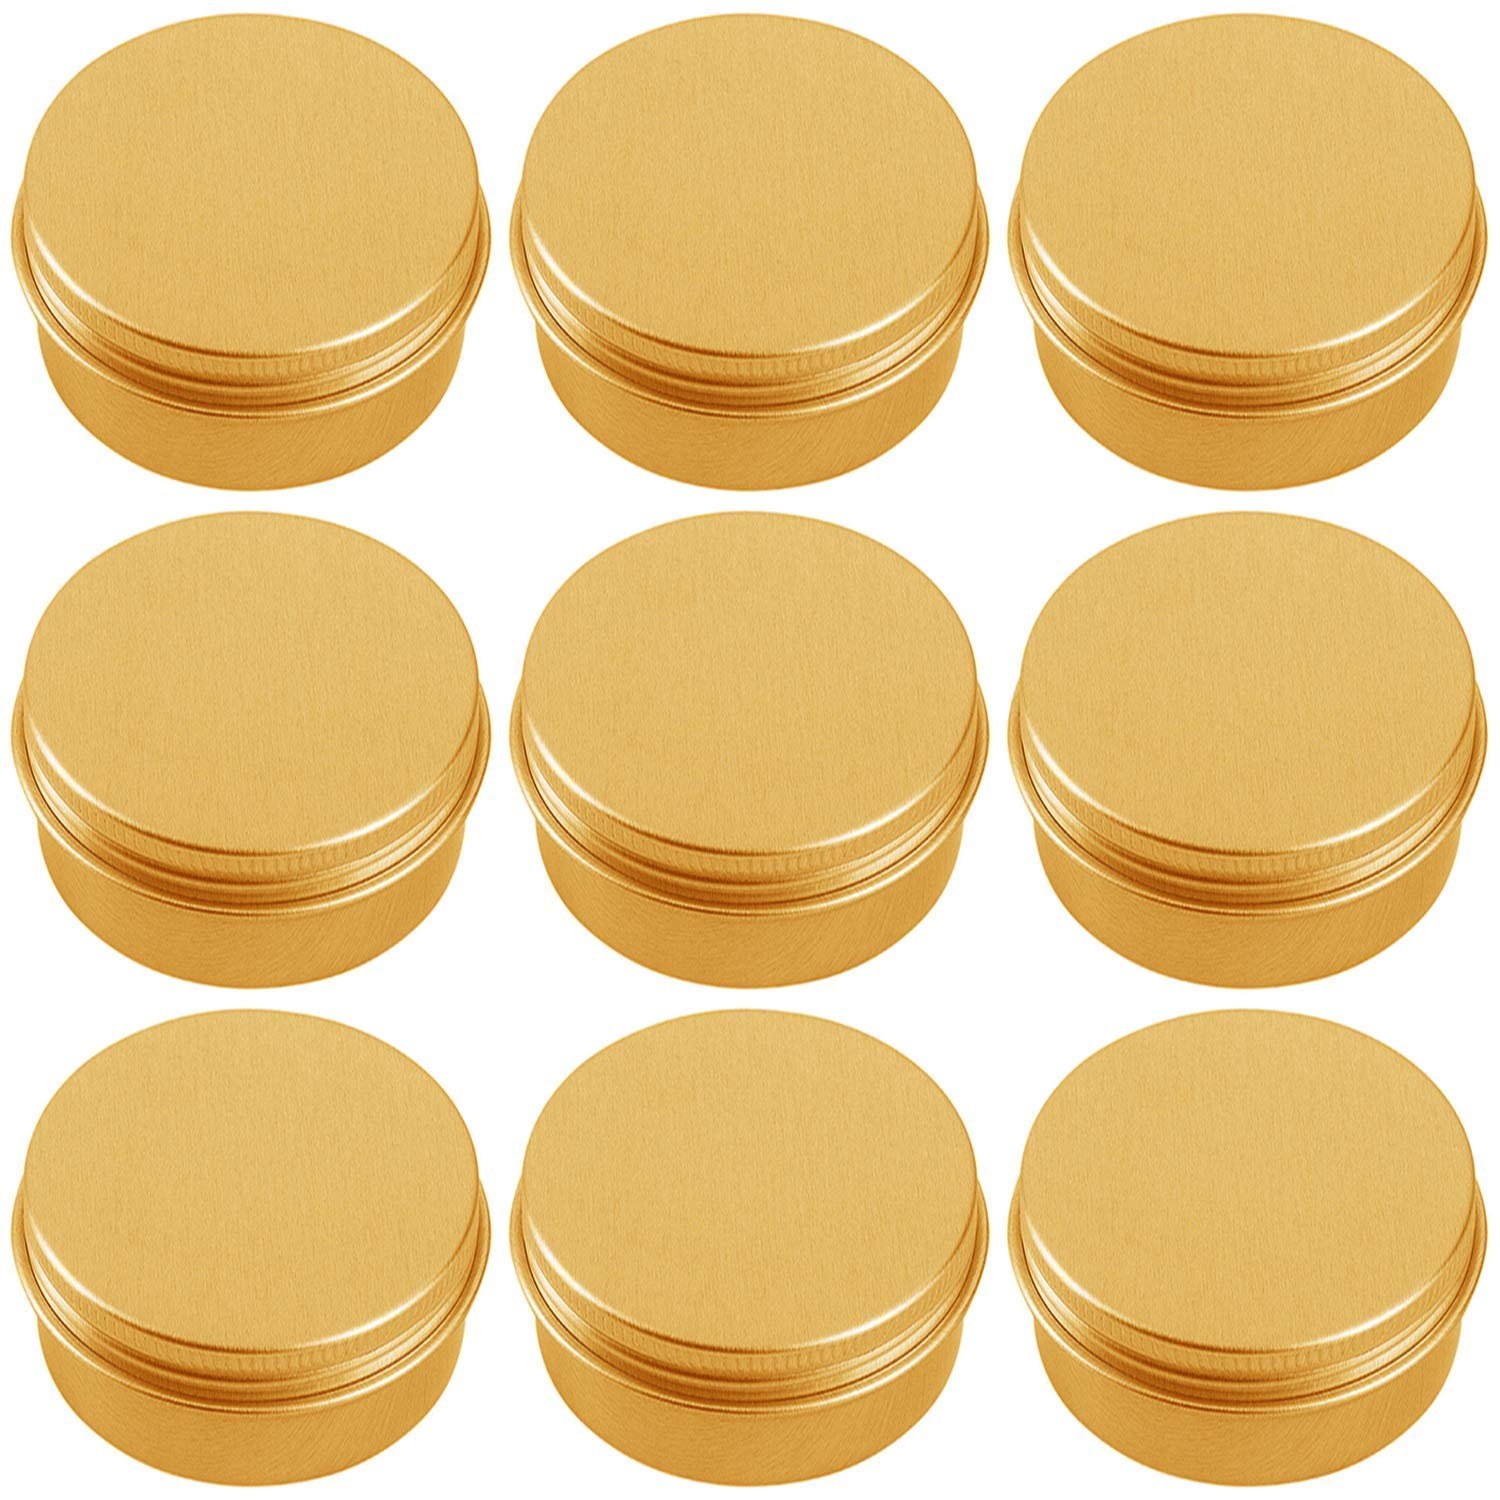 Hulless Aluminum Tin Jar 2 Oz Refillable Containers 60ml, Cosmetic small tin, Aluminum Screw Lid Round Tin Container Bottle for Candle, Lip Balm, Salve, Eye Shadow, Powder, 10 Pcs Gold Color.